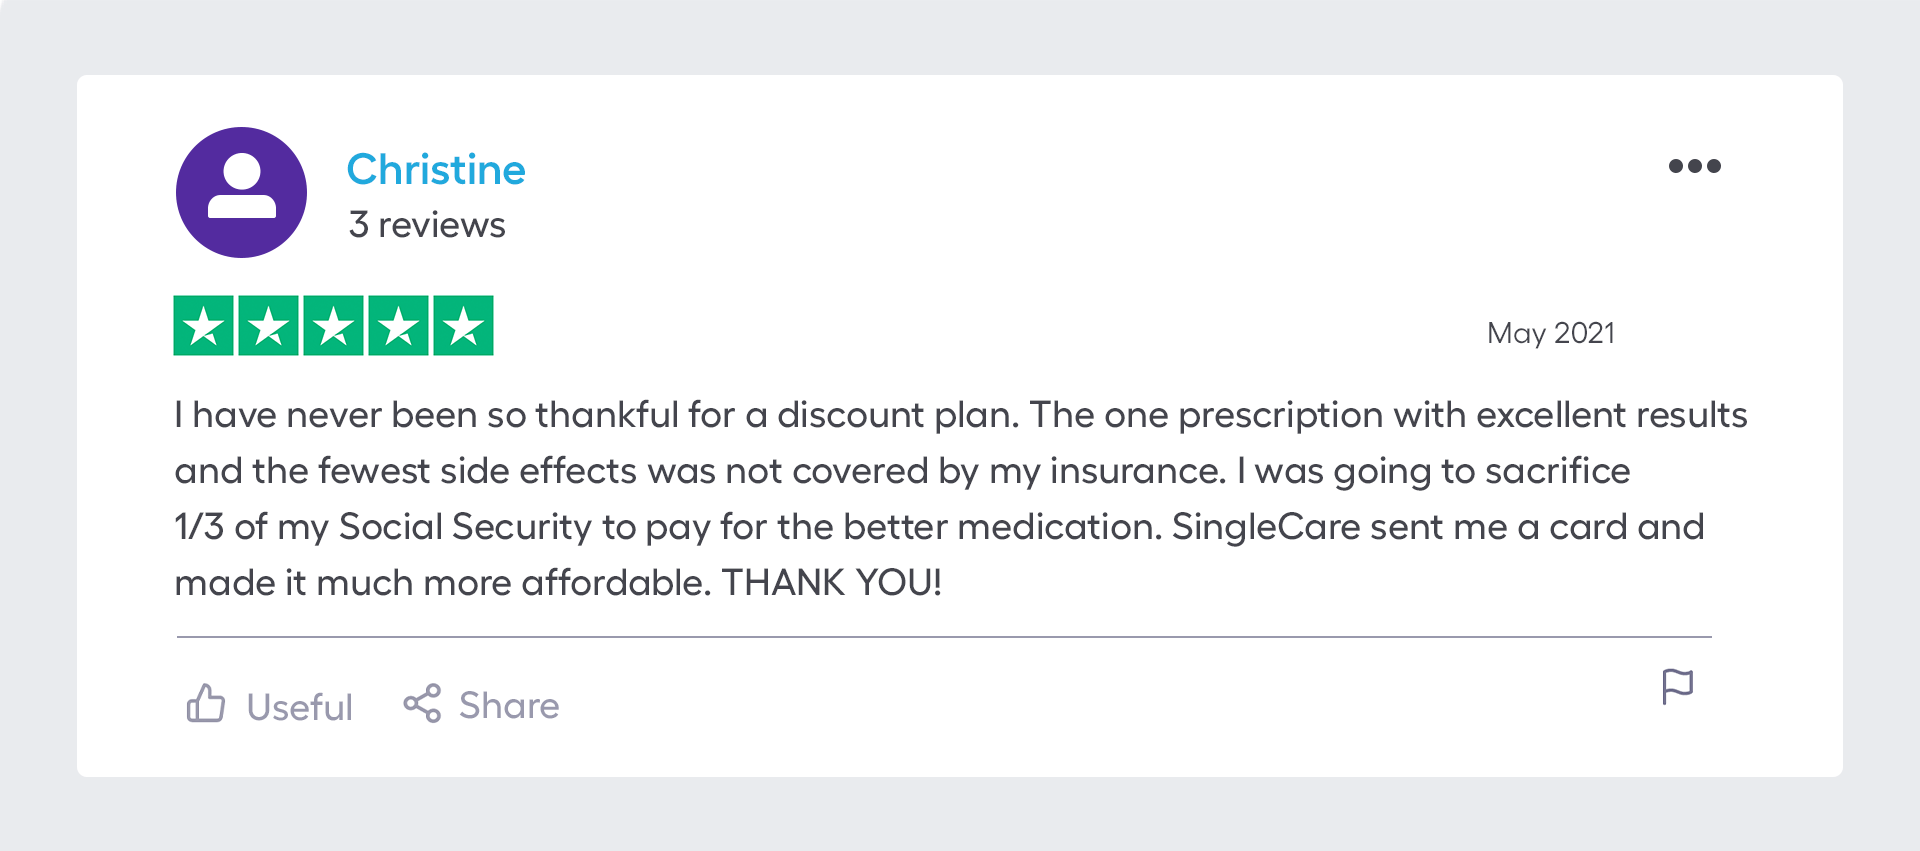 """""""I have never been so thankful for a discount plan. The one prescription with the best results and the fewest side effects was not covered by my insurance. I was going to sacrifice 1/3 of my Social Security to pay for the better medication. SingleCare sent me a card and made it much more affordable. THANK YOU!!"""